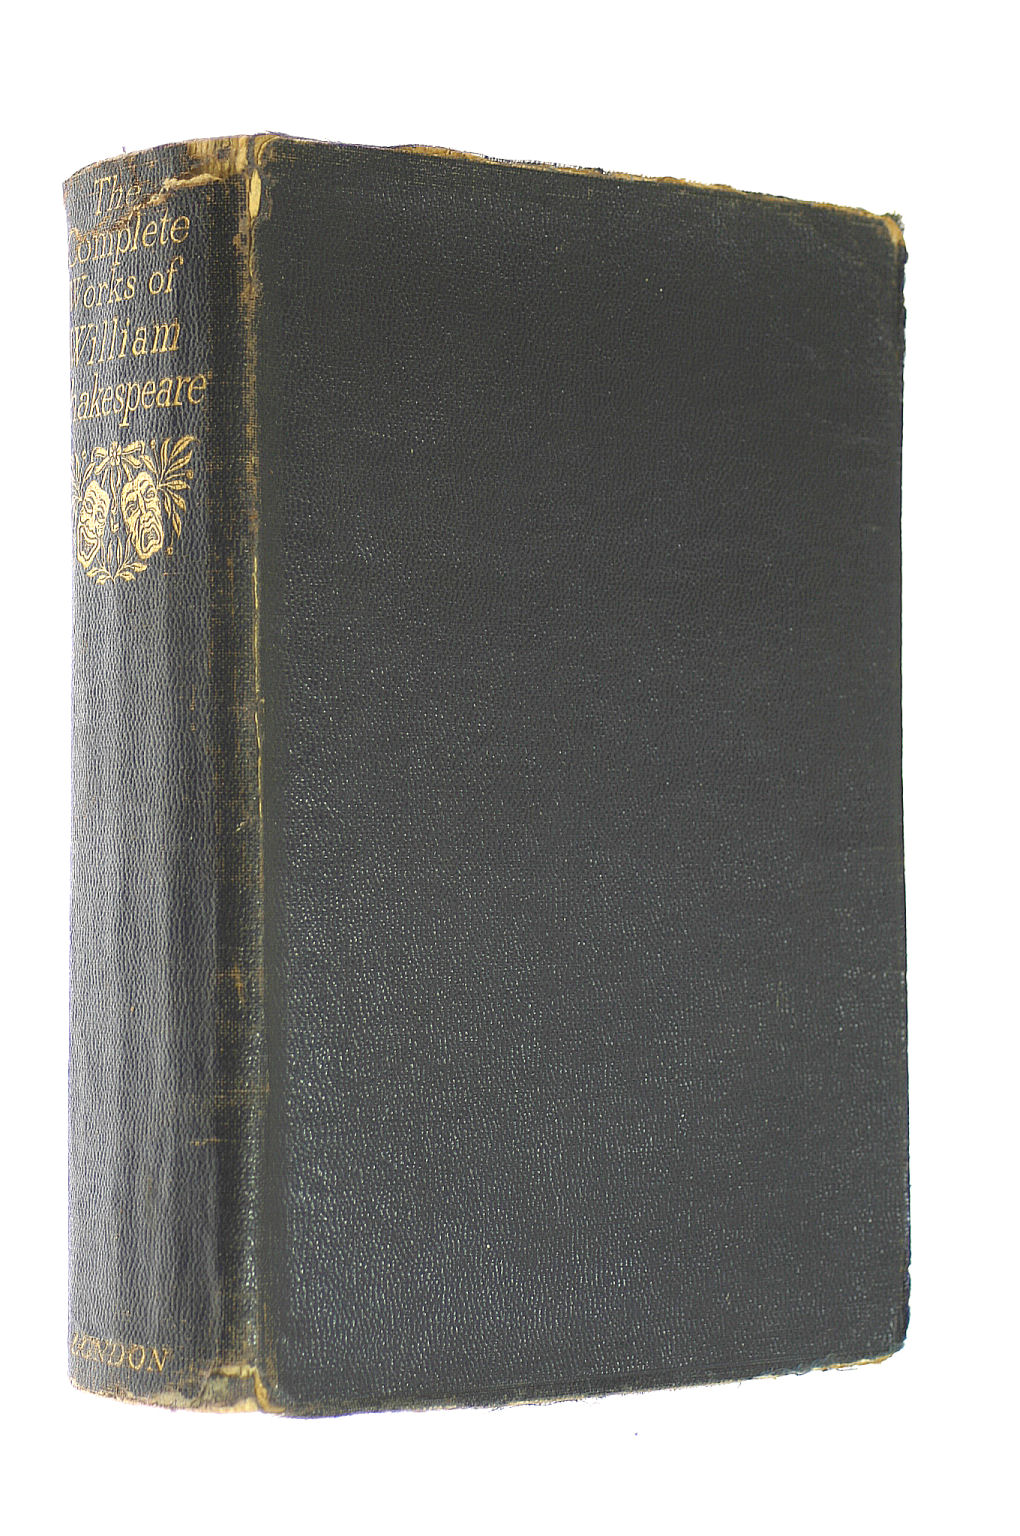 Image for The Complete Works of William Shakespeare.